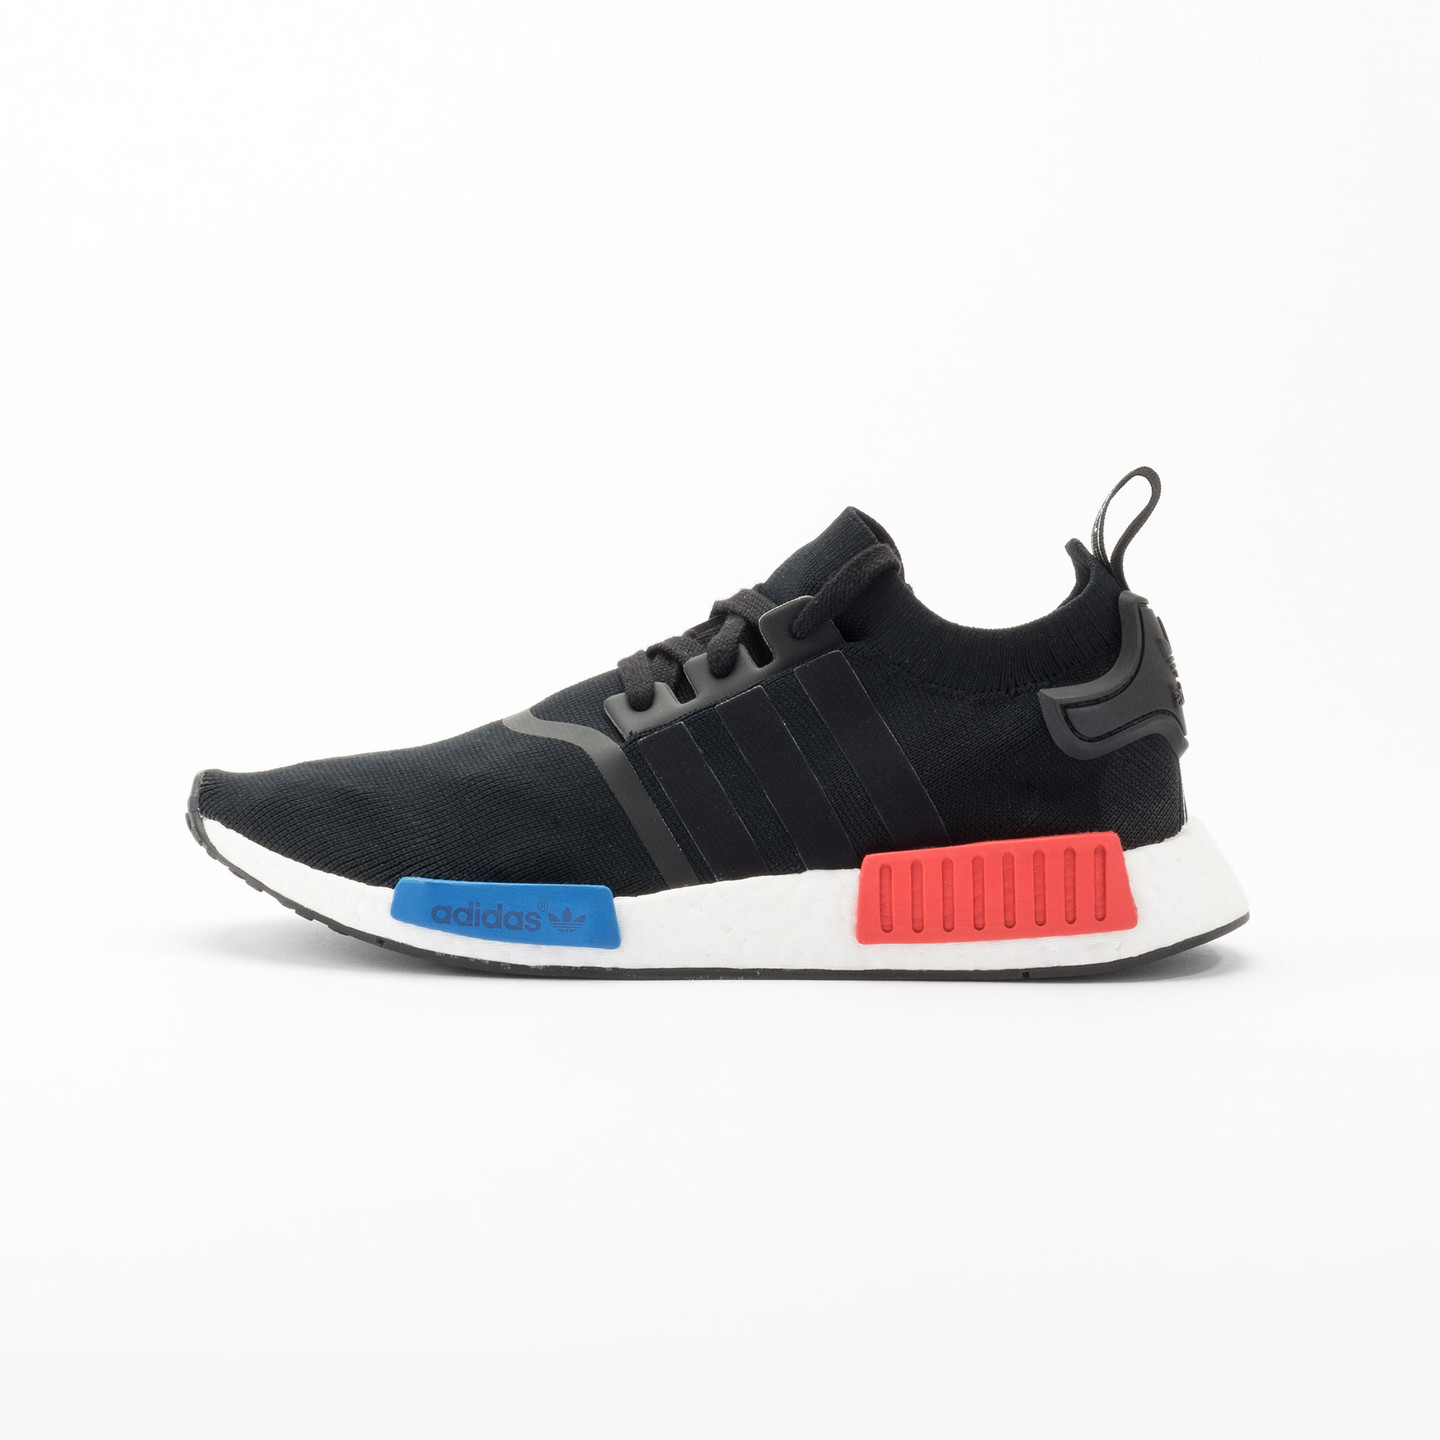 Adidas NMD Runner PK Primeknit Black / Red / Blue / White S79168-45.33